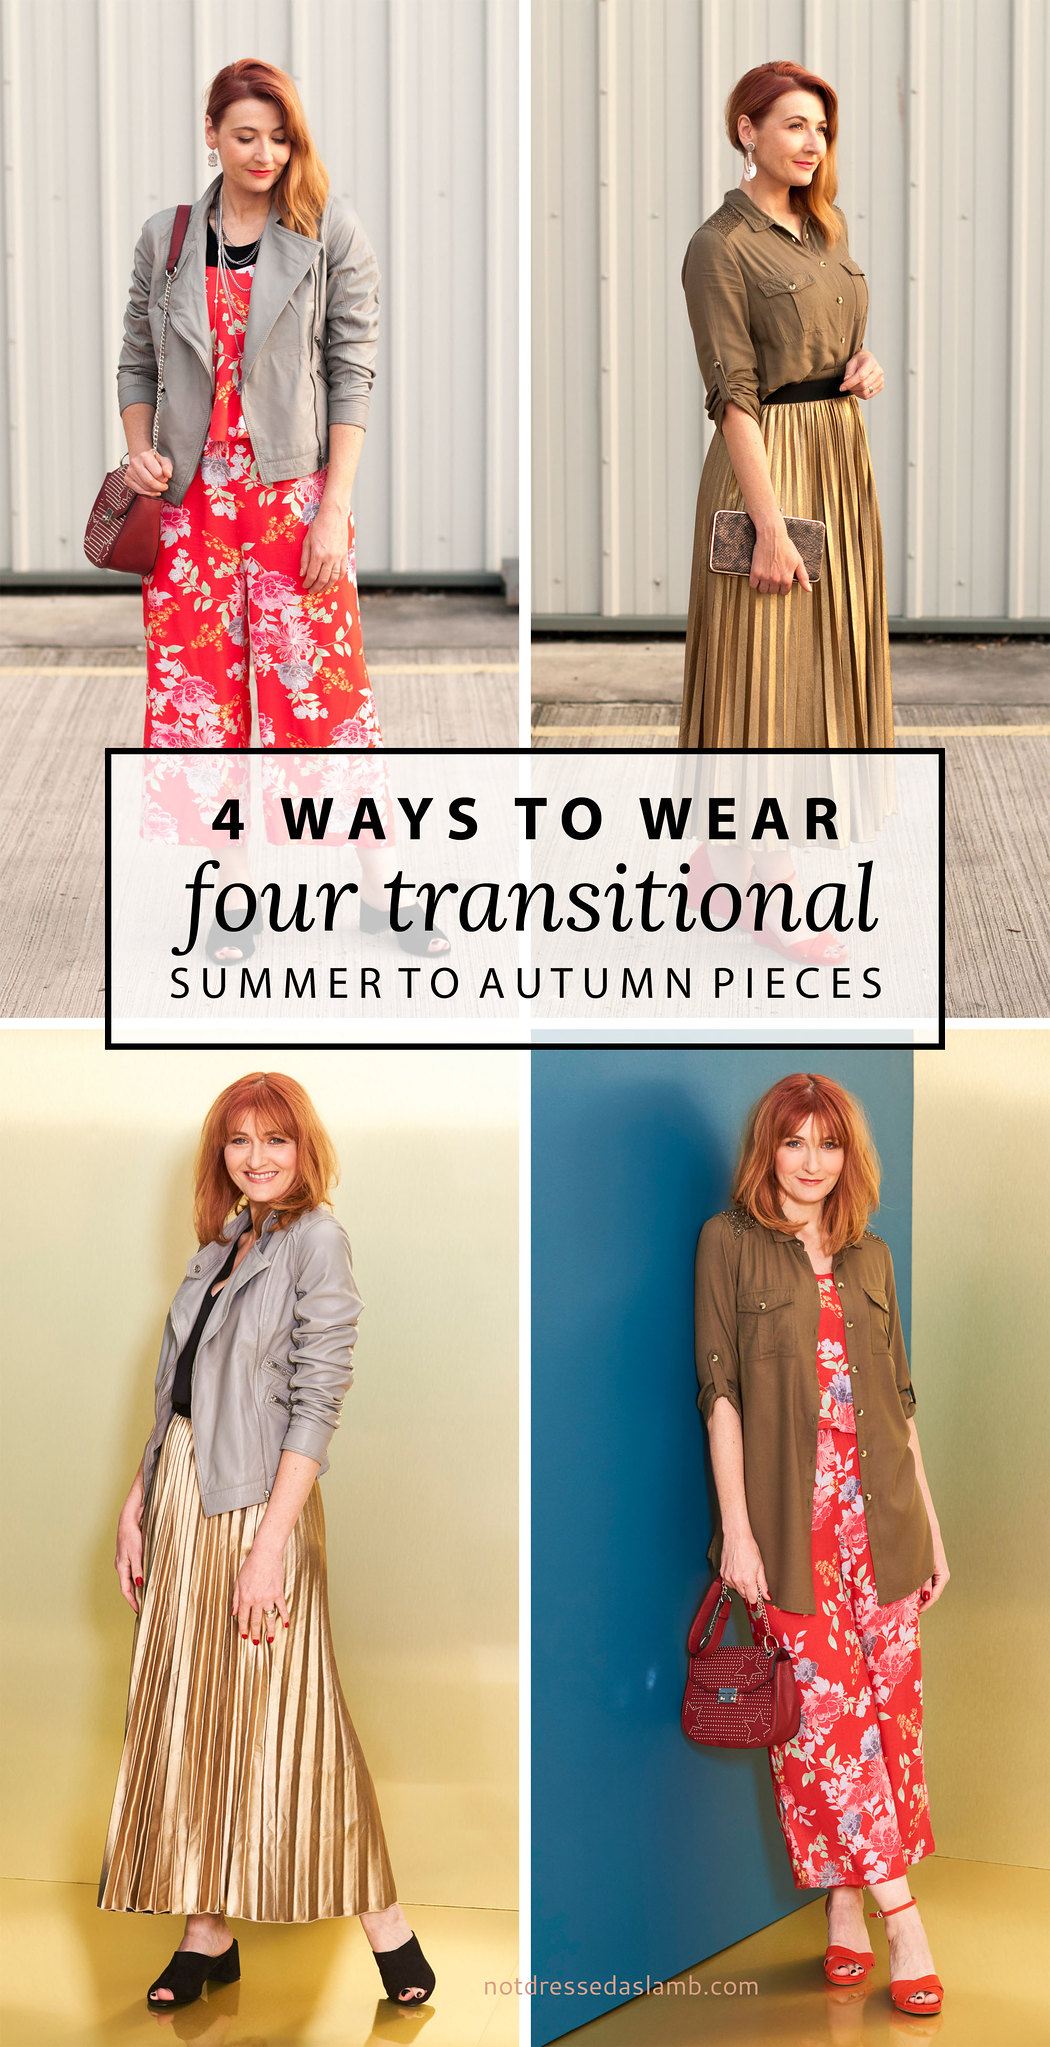 4 Ways to Wear four transitional summer to autumn pieces: Grey leather jacket, orange floral jumpsuit, khaki shirt, gold metallic pleated maxi skirt | Not Dressed As Lamb, over 40 style